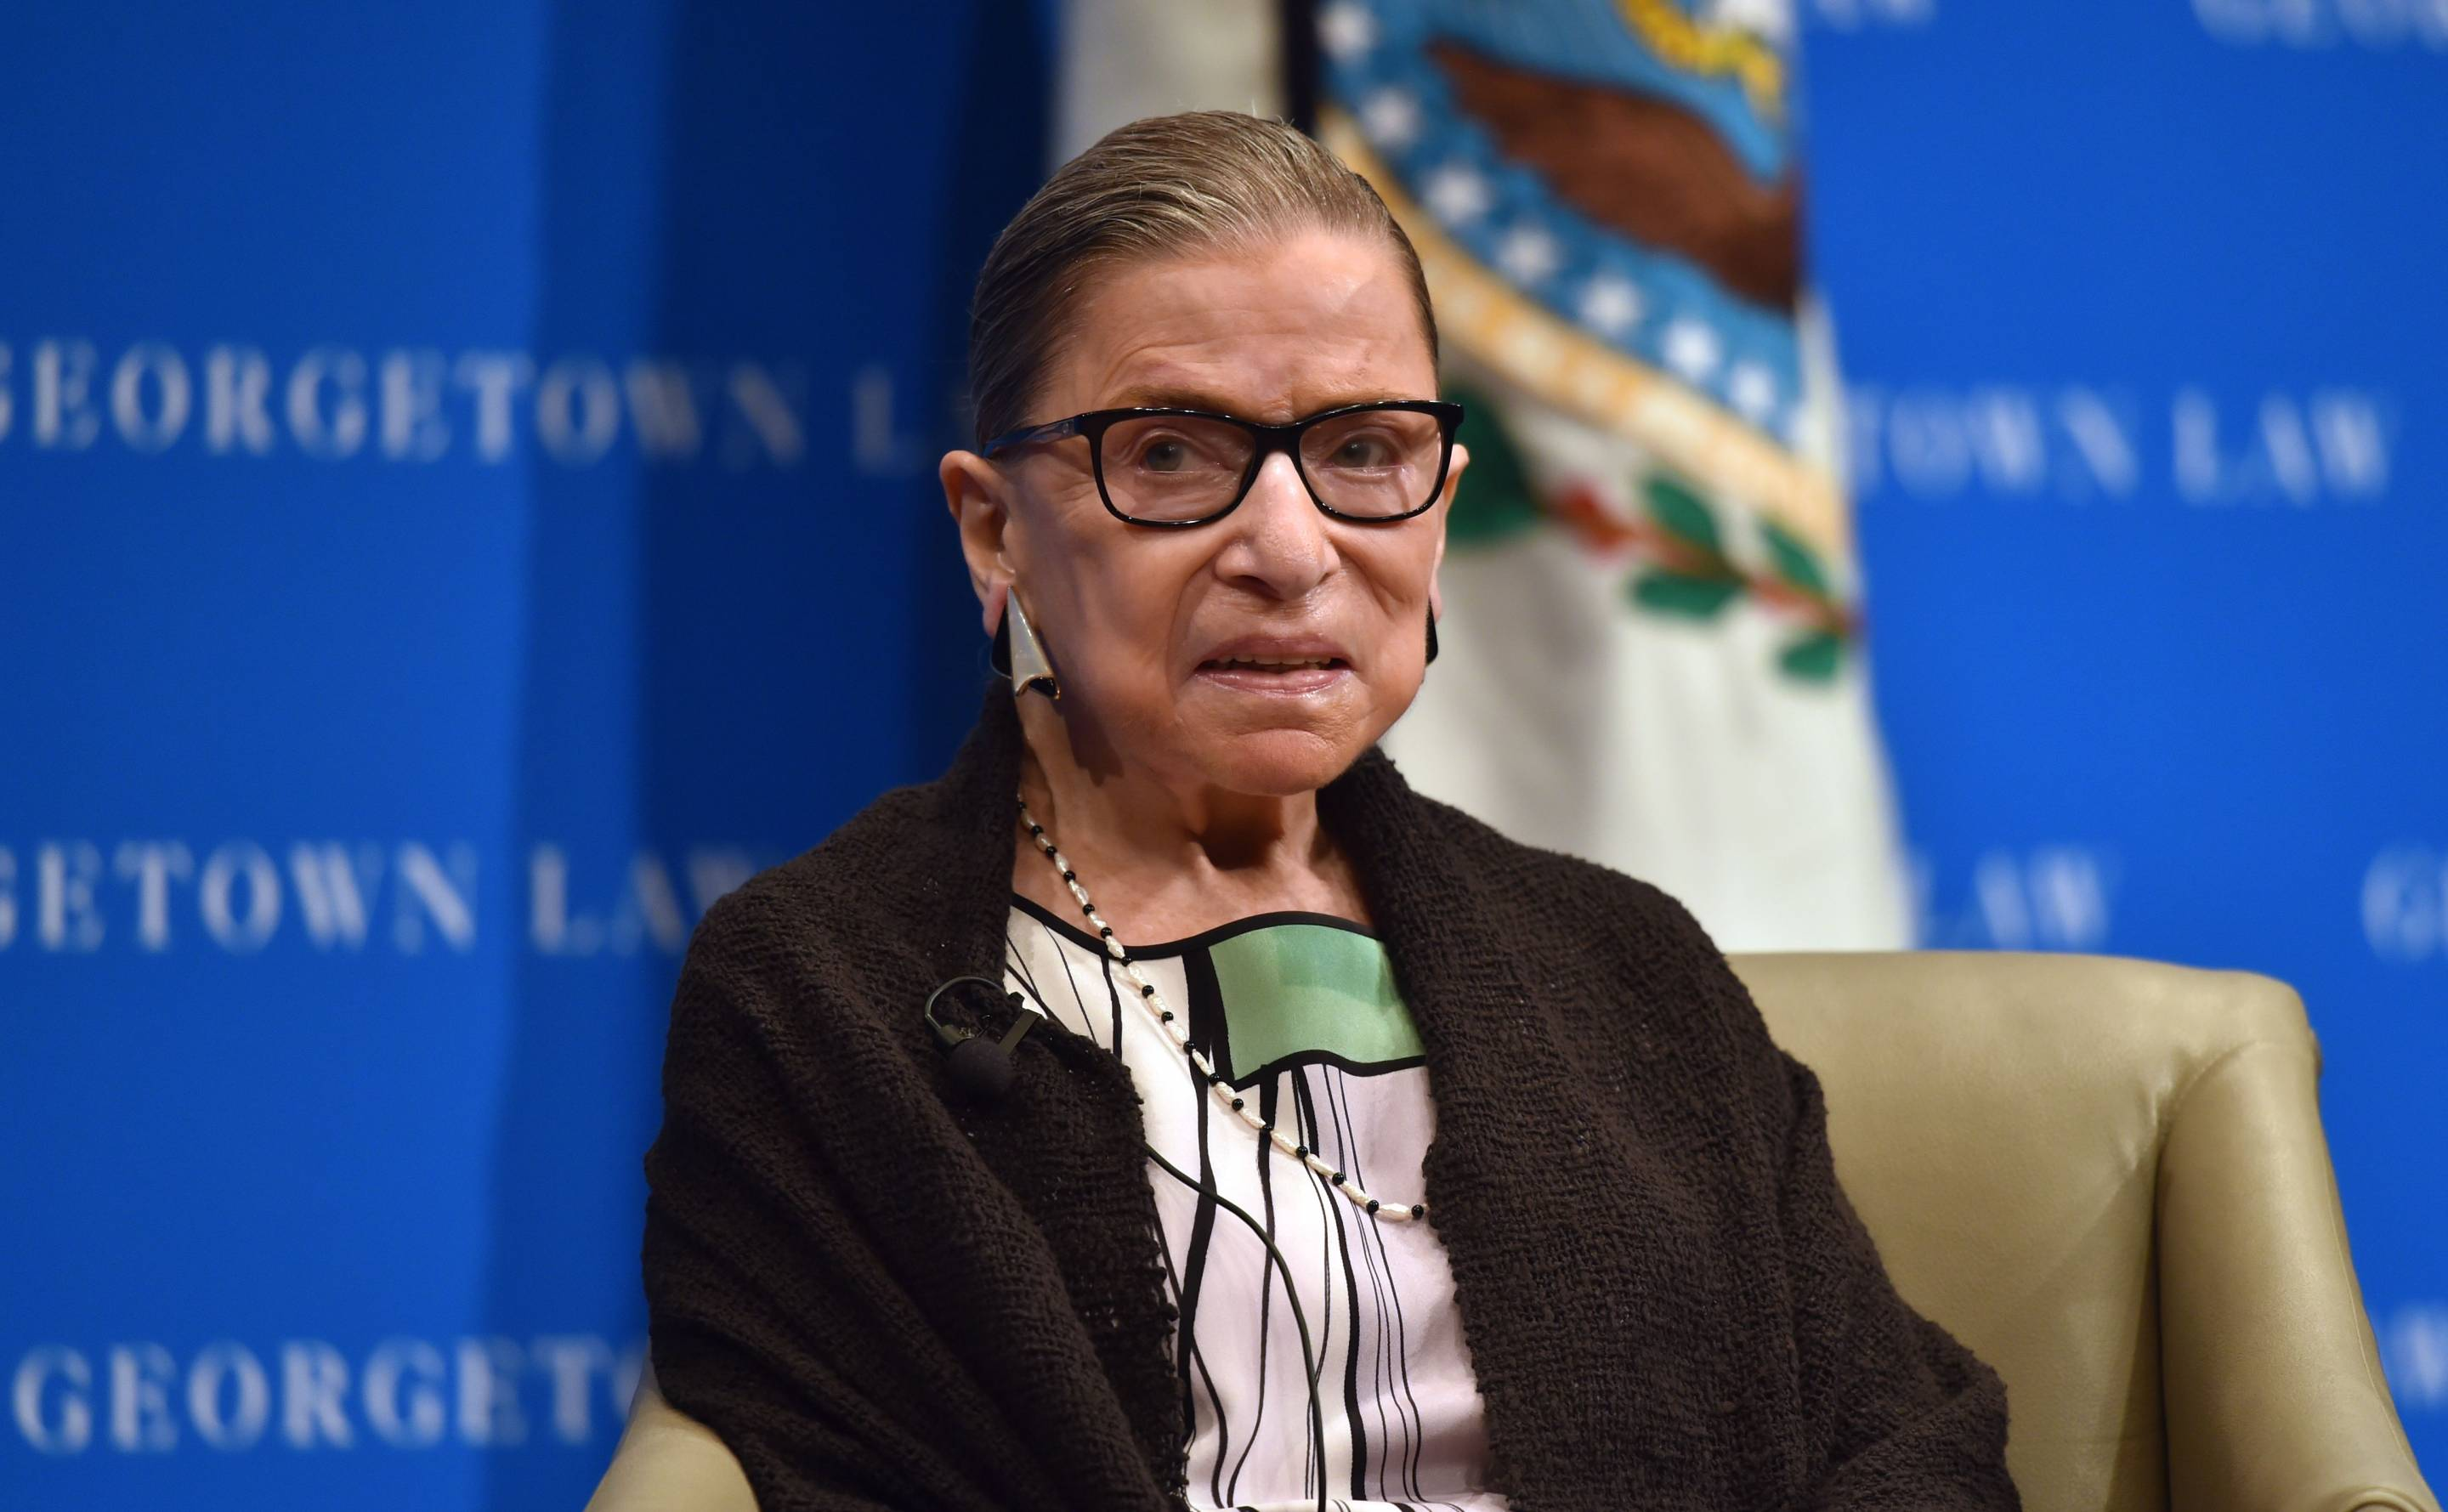 Supreme Court Justice Ruth Bader Ginsburg Recovering at Home